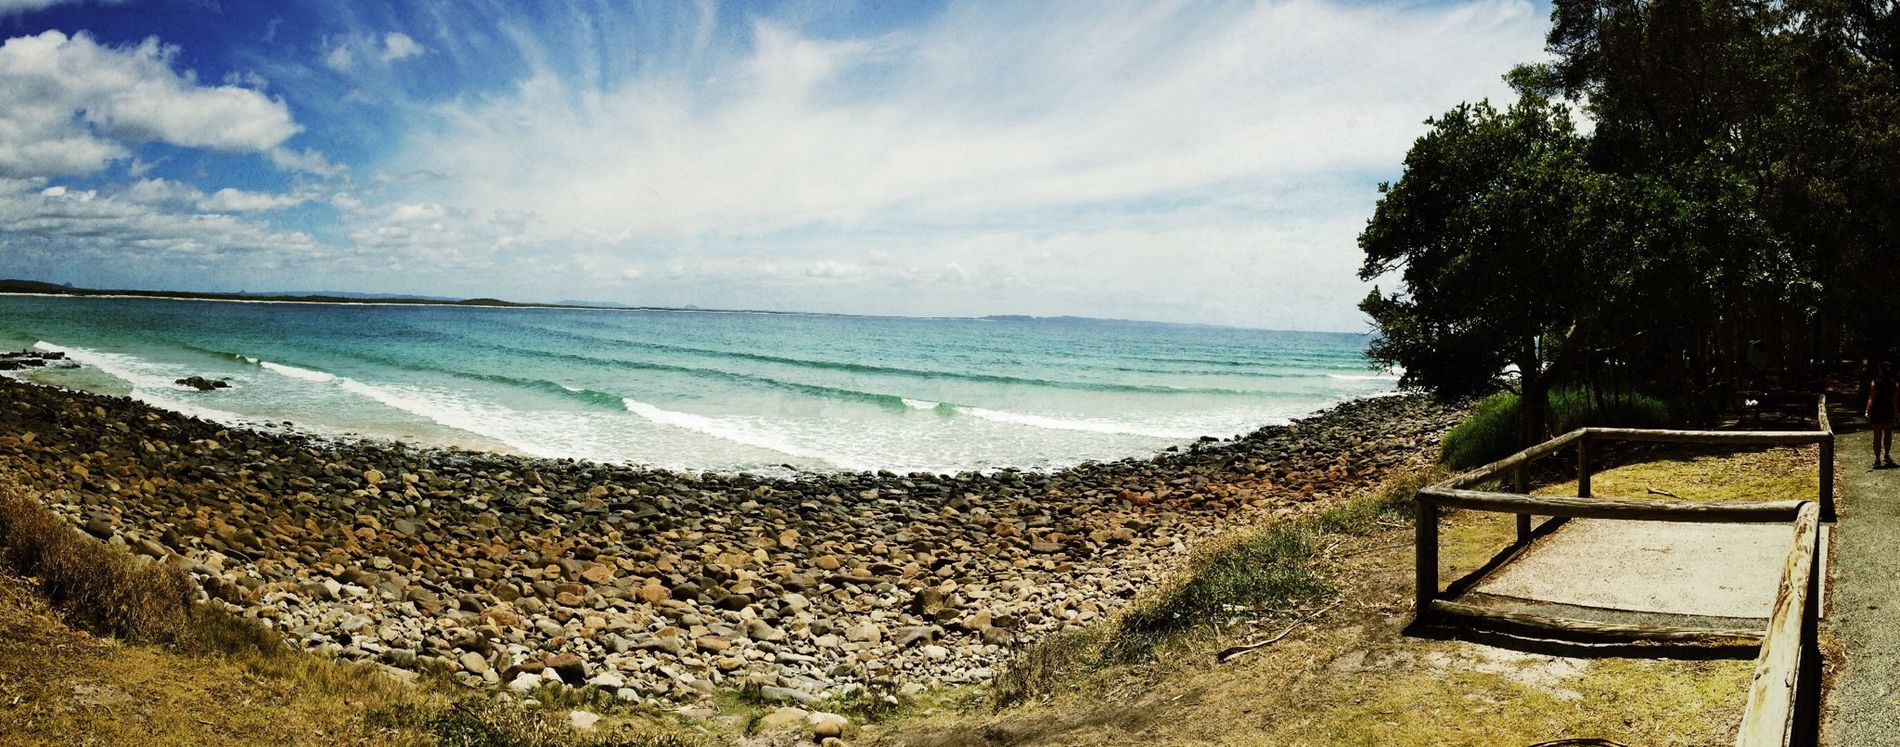 Noosa baby!! Life Is A Beach Ocean❤ Light Up Your Life Taking Photos